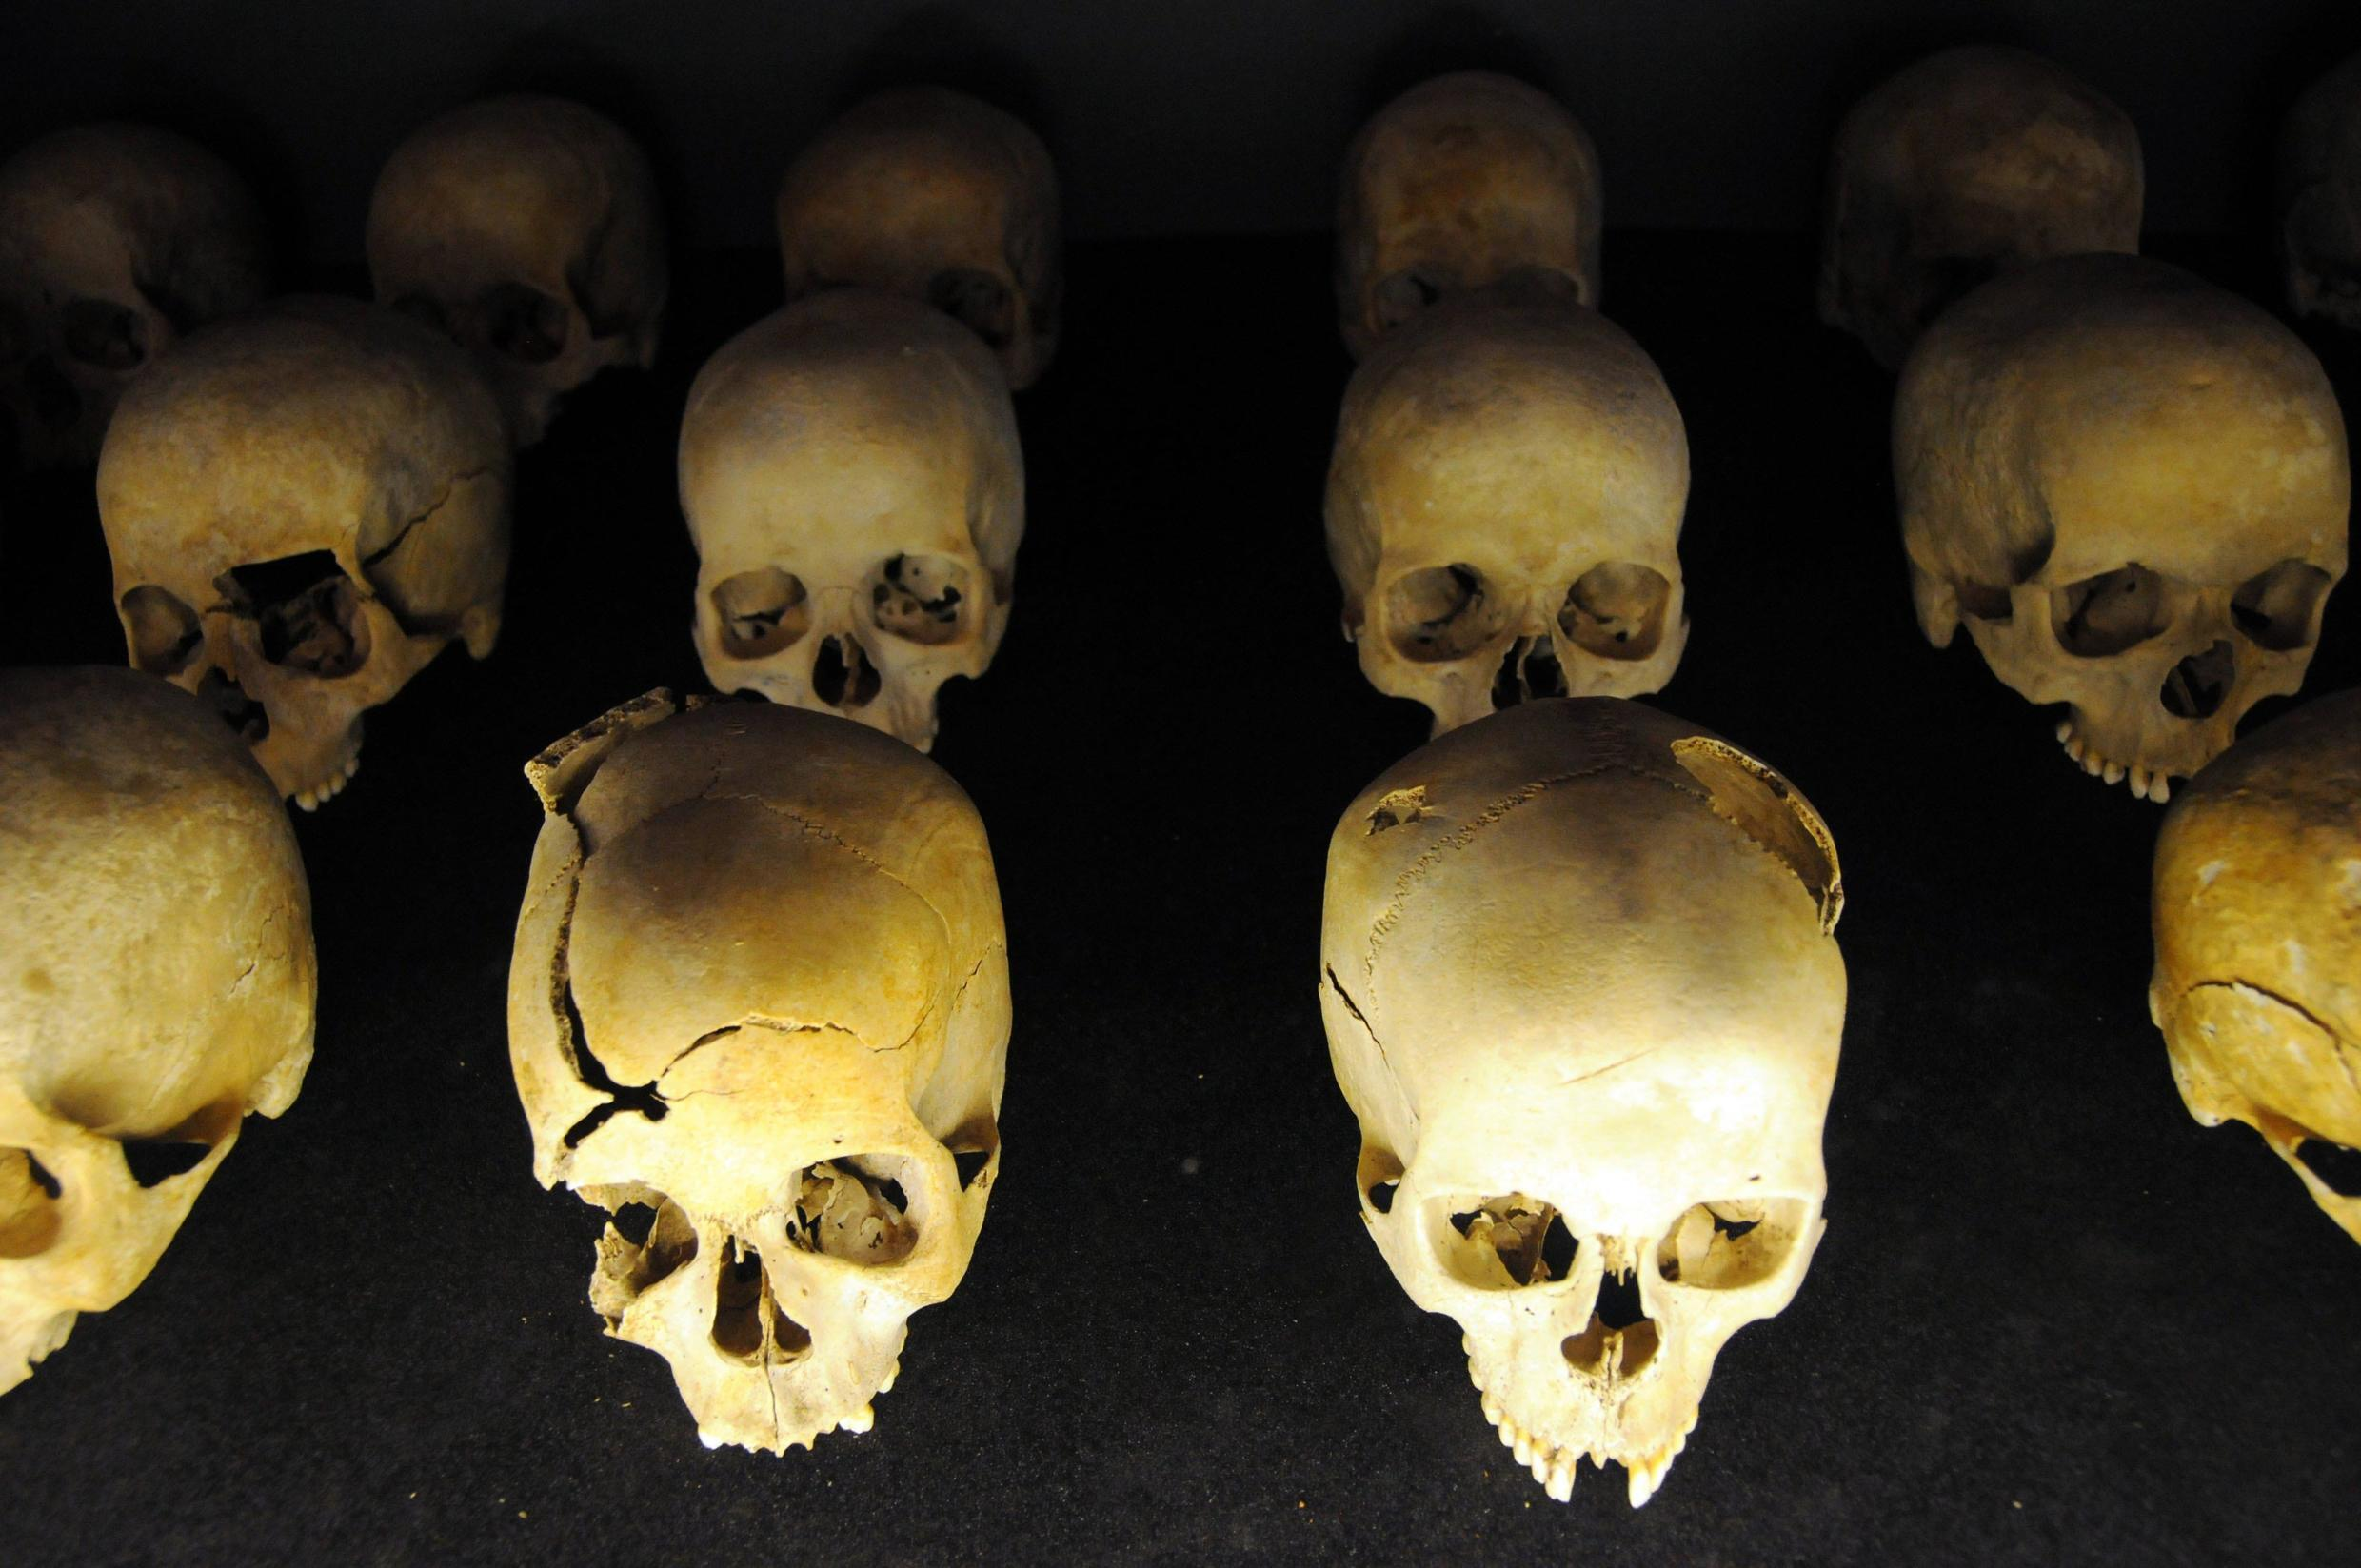 Skulls of victims at Rwanda's genocide memorial in Kigali. Around 800,000 people were murdered over three months in 1994.